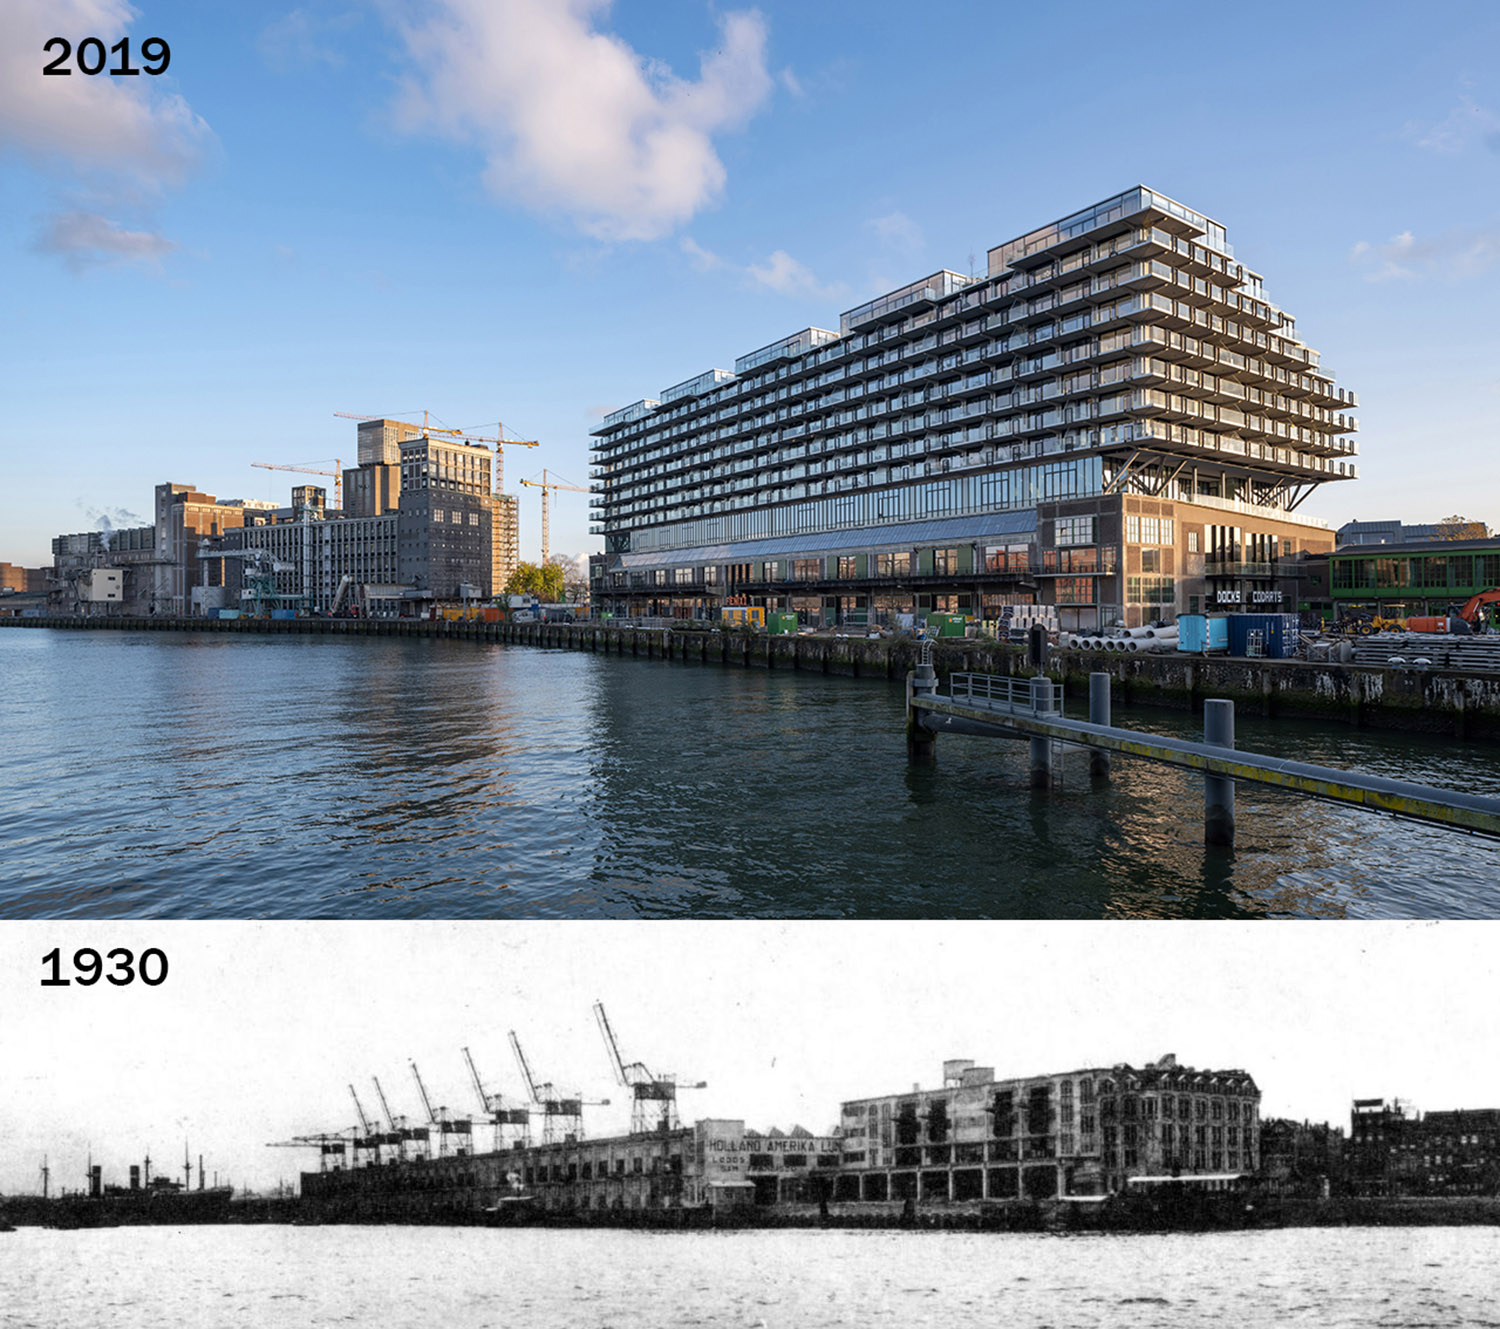 Mei architects and planners - Fenix I - Rijnhaven side and historical photo Ossip